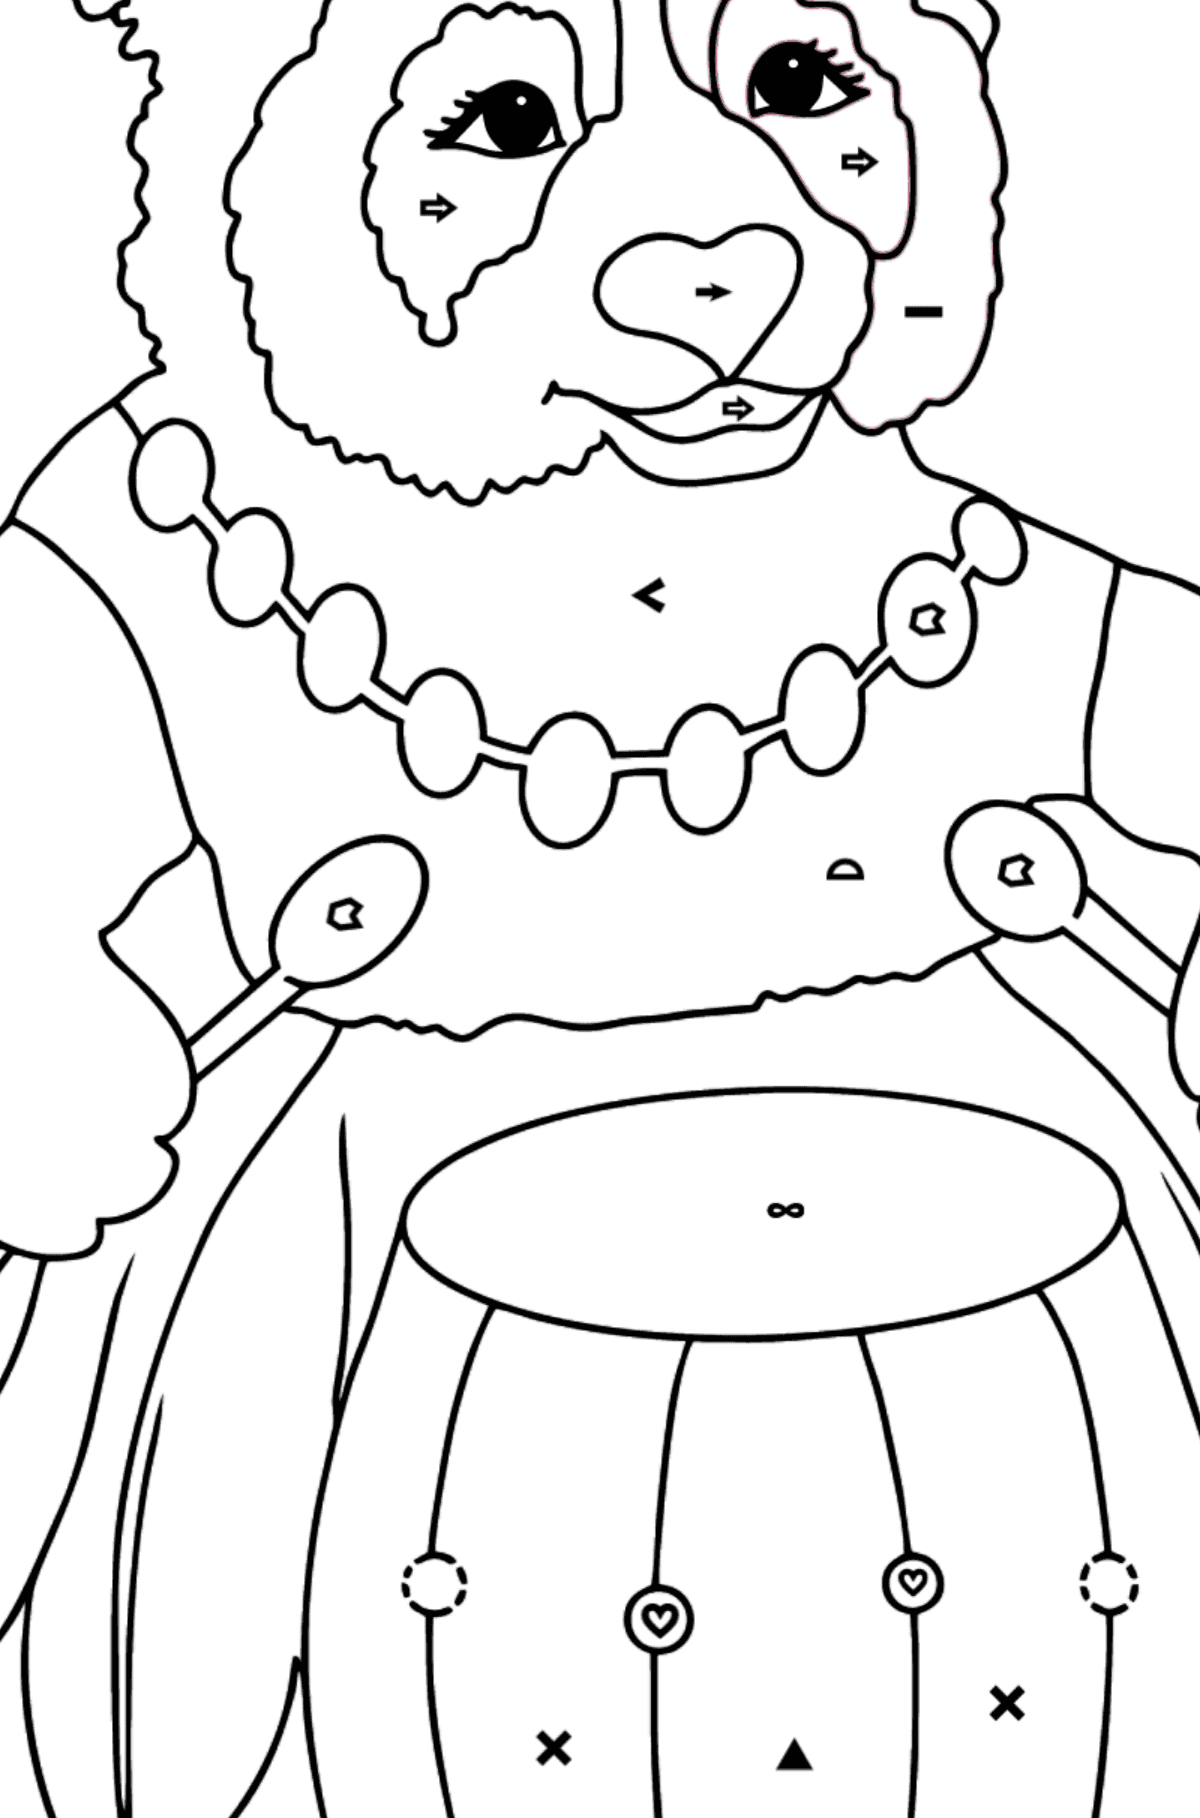 Coloring Page - A Panda and a Drum - Coloring by Symbols and Geometric Shapes for Kids